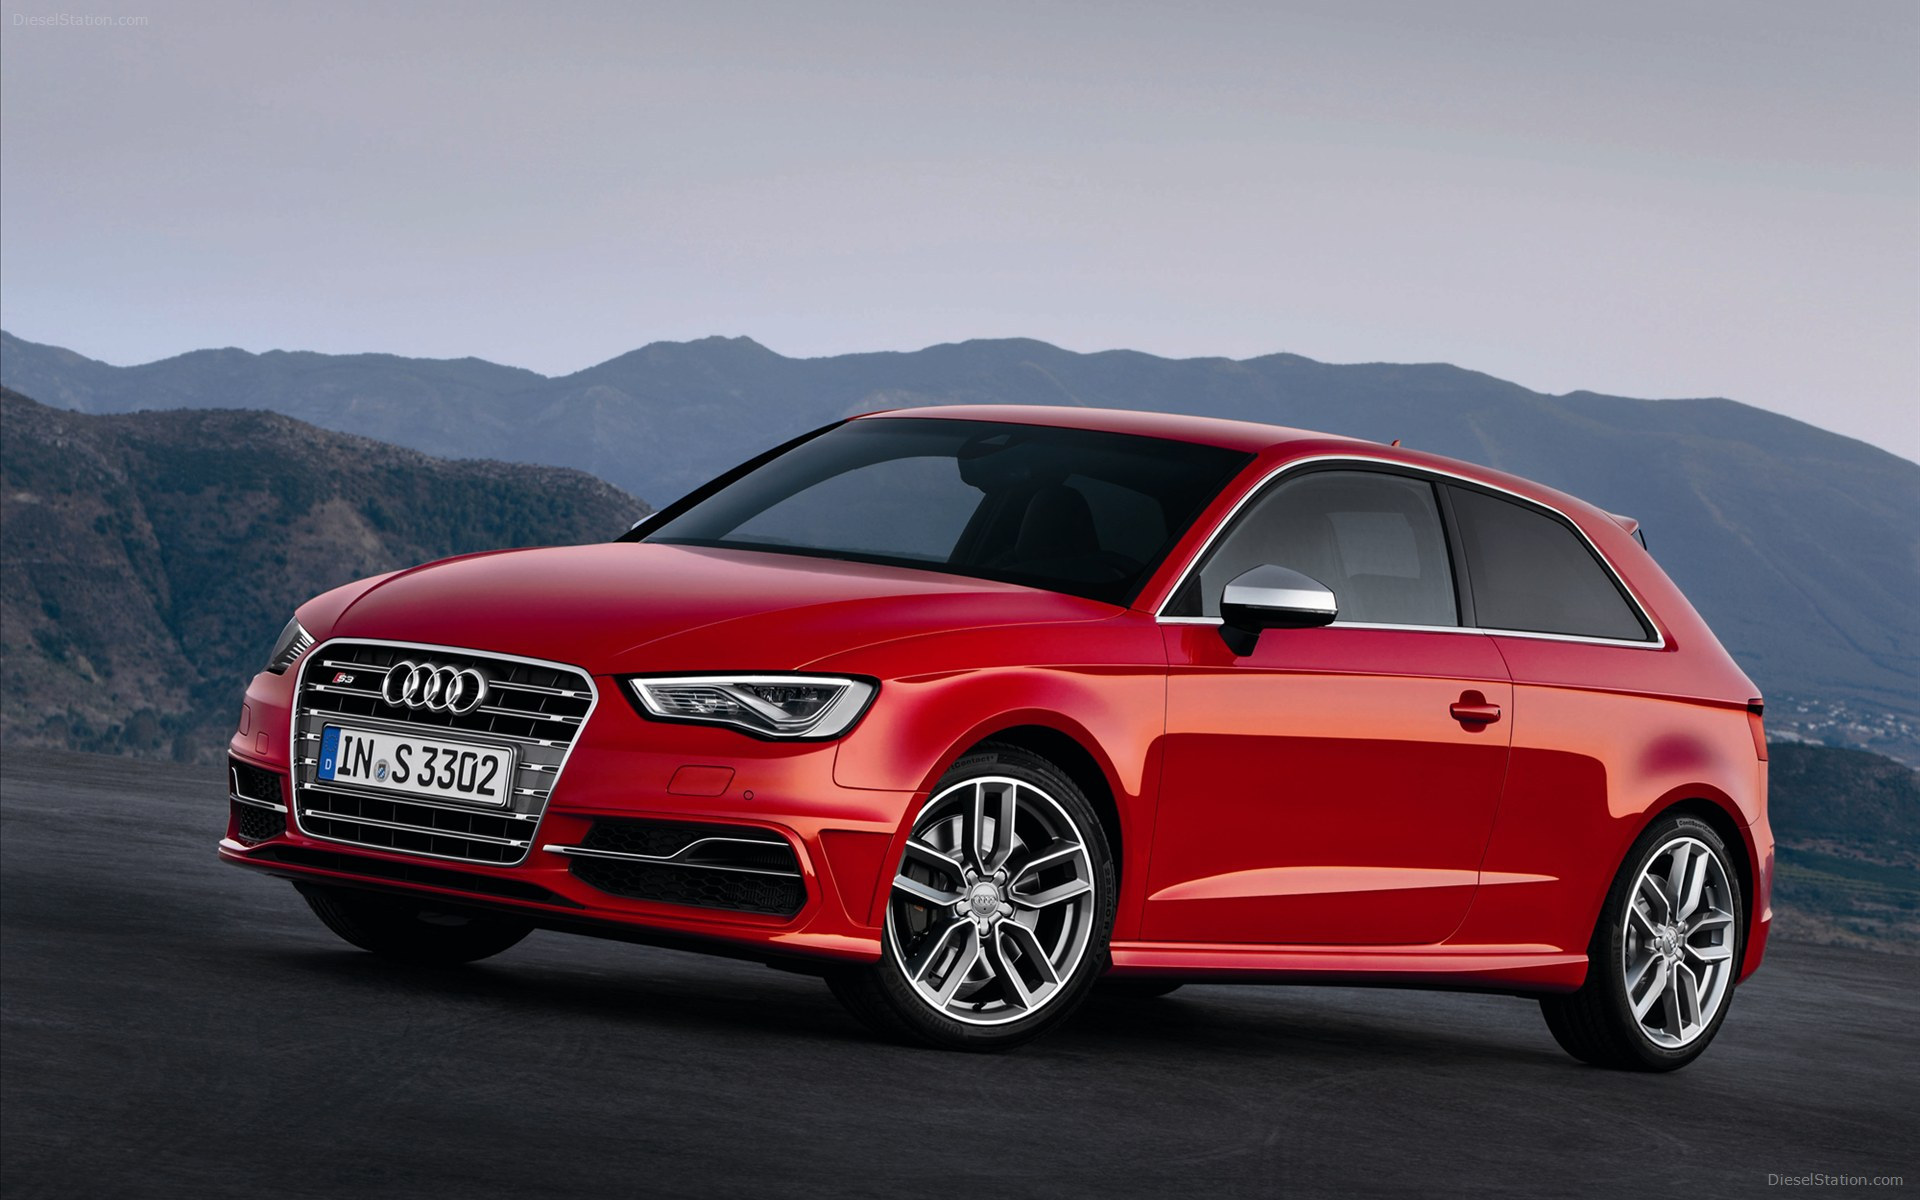 2013 Audi S3 Hatchback 3-door